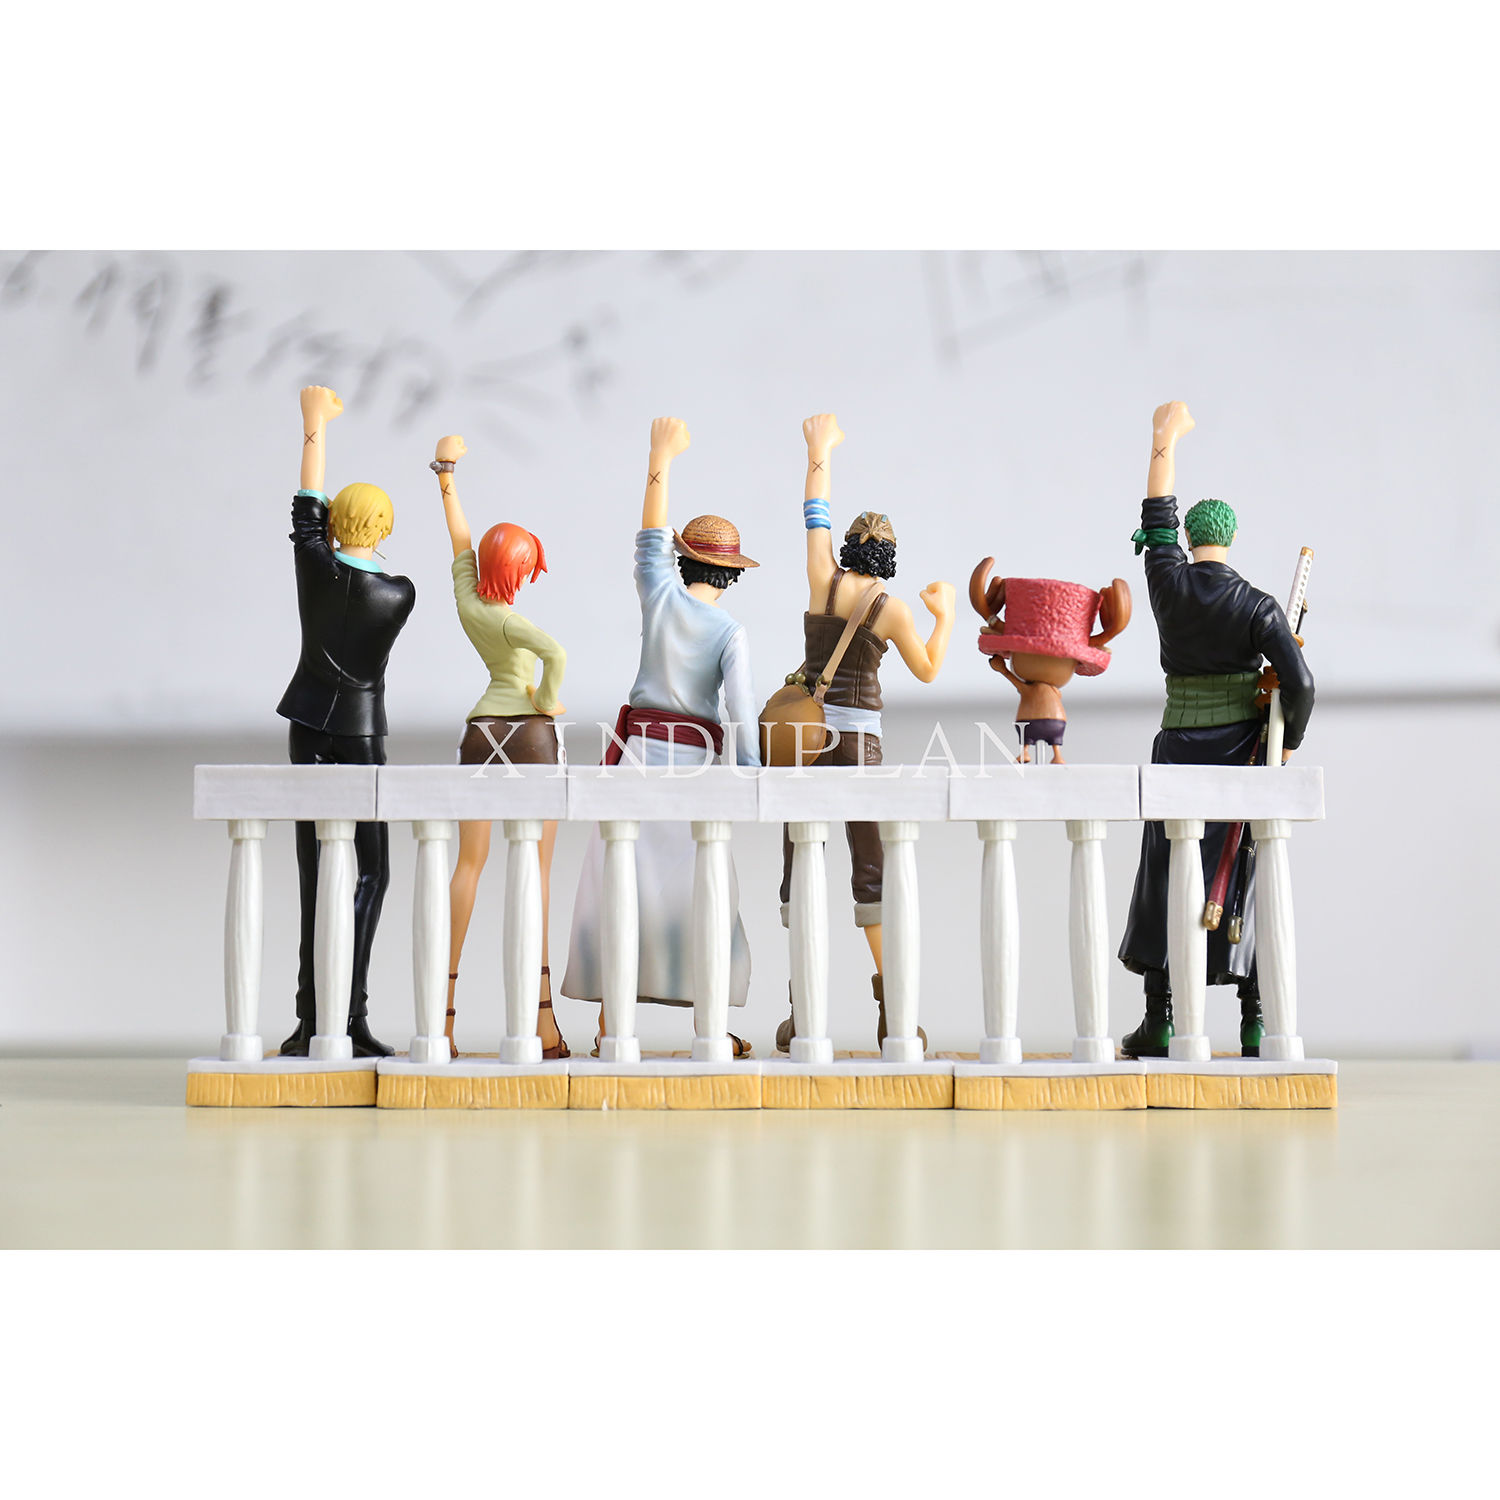 XINDUPLAN One Piece Anime Alabasta Straw Hat Pirates Luffy Zoro Sanji Nami Chopper Onepiece Action Figure Toy 6PCS Model 0075 brand new portrait of pirates one piece roronoa zoro 23cm pvc cool cartoon action figure model toy for gift kids free shipping